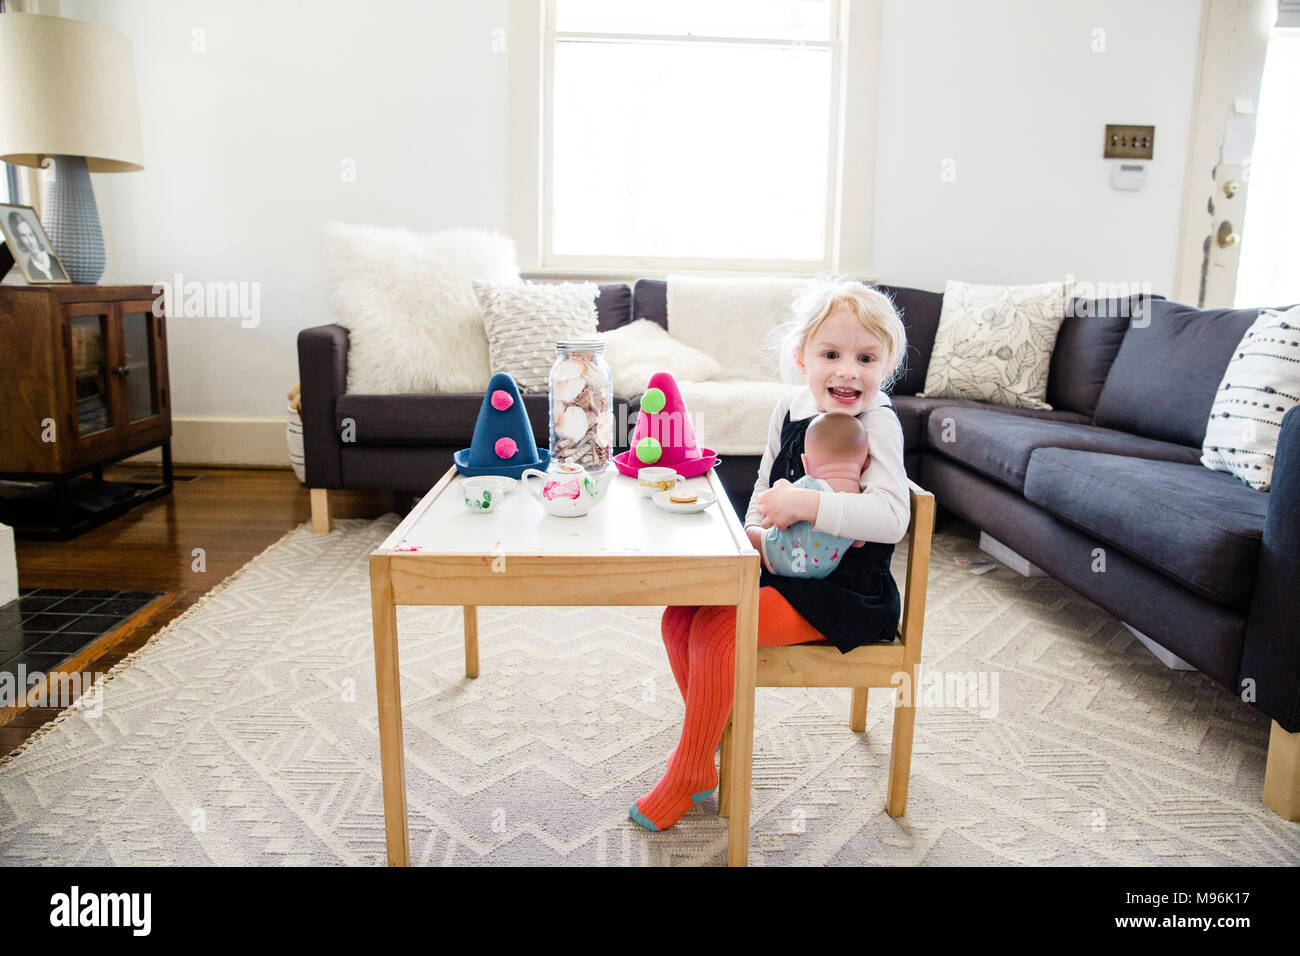 Girl sitting on chair next to table with party hats on - Stock Image